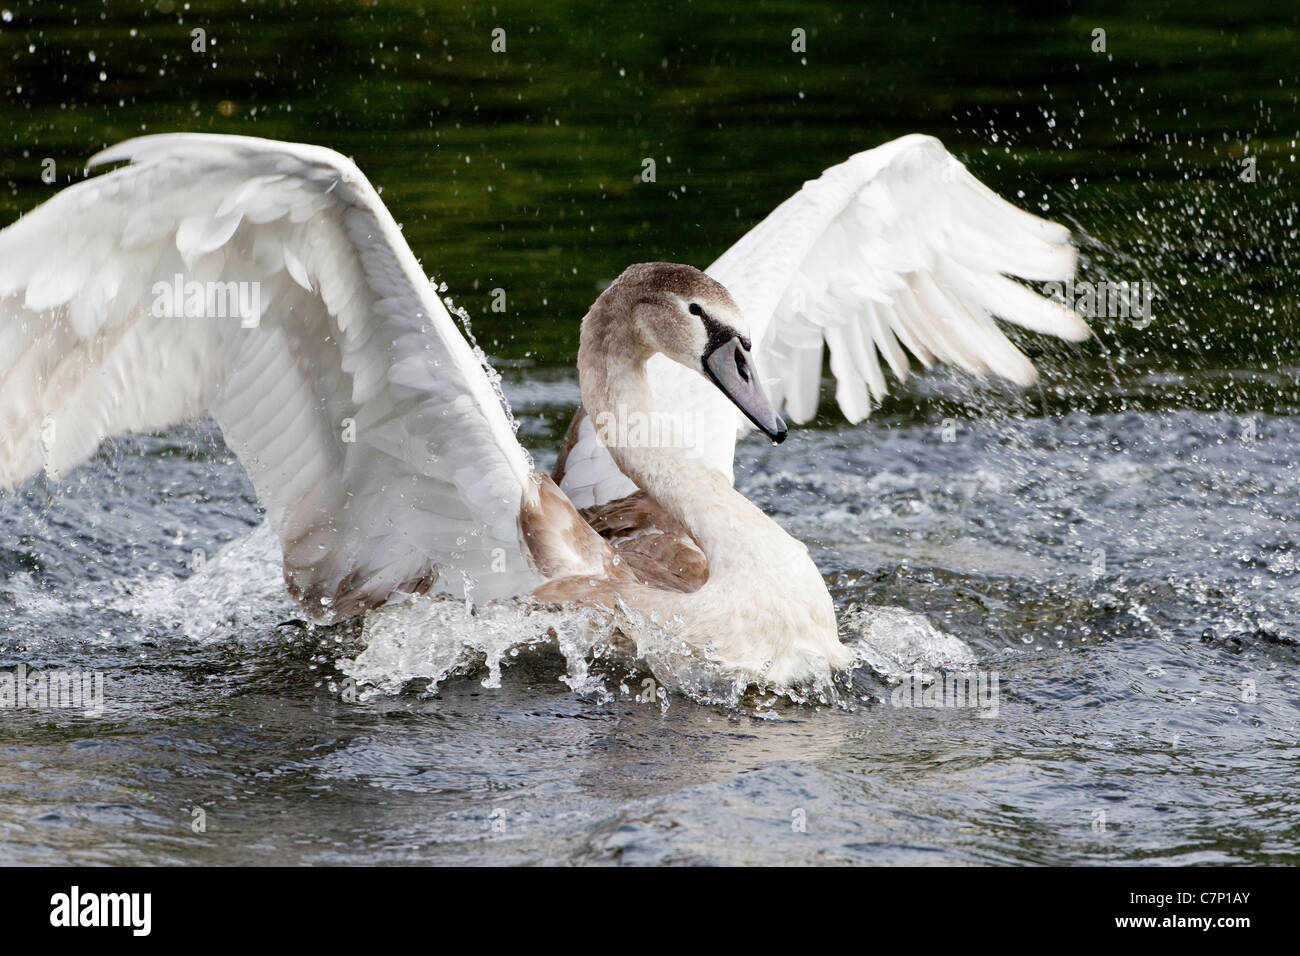 Juvenile Mute Swan Cygnus Olar 6 months old and bathing with beating wings - Stock Image